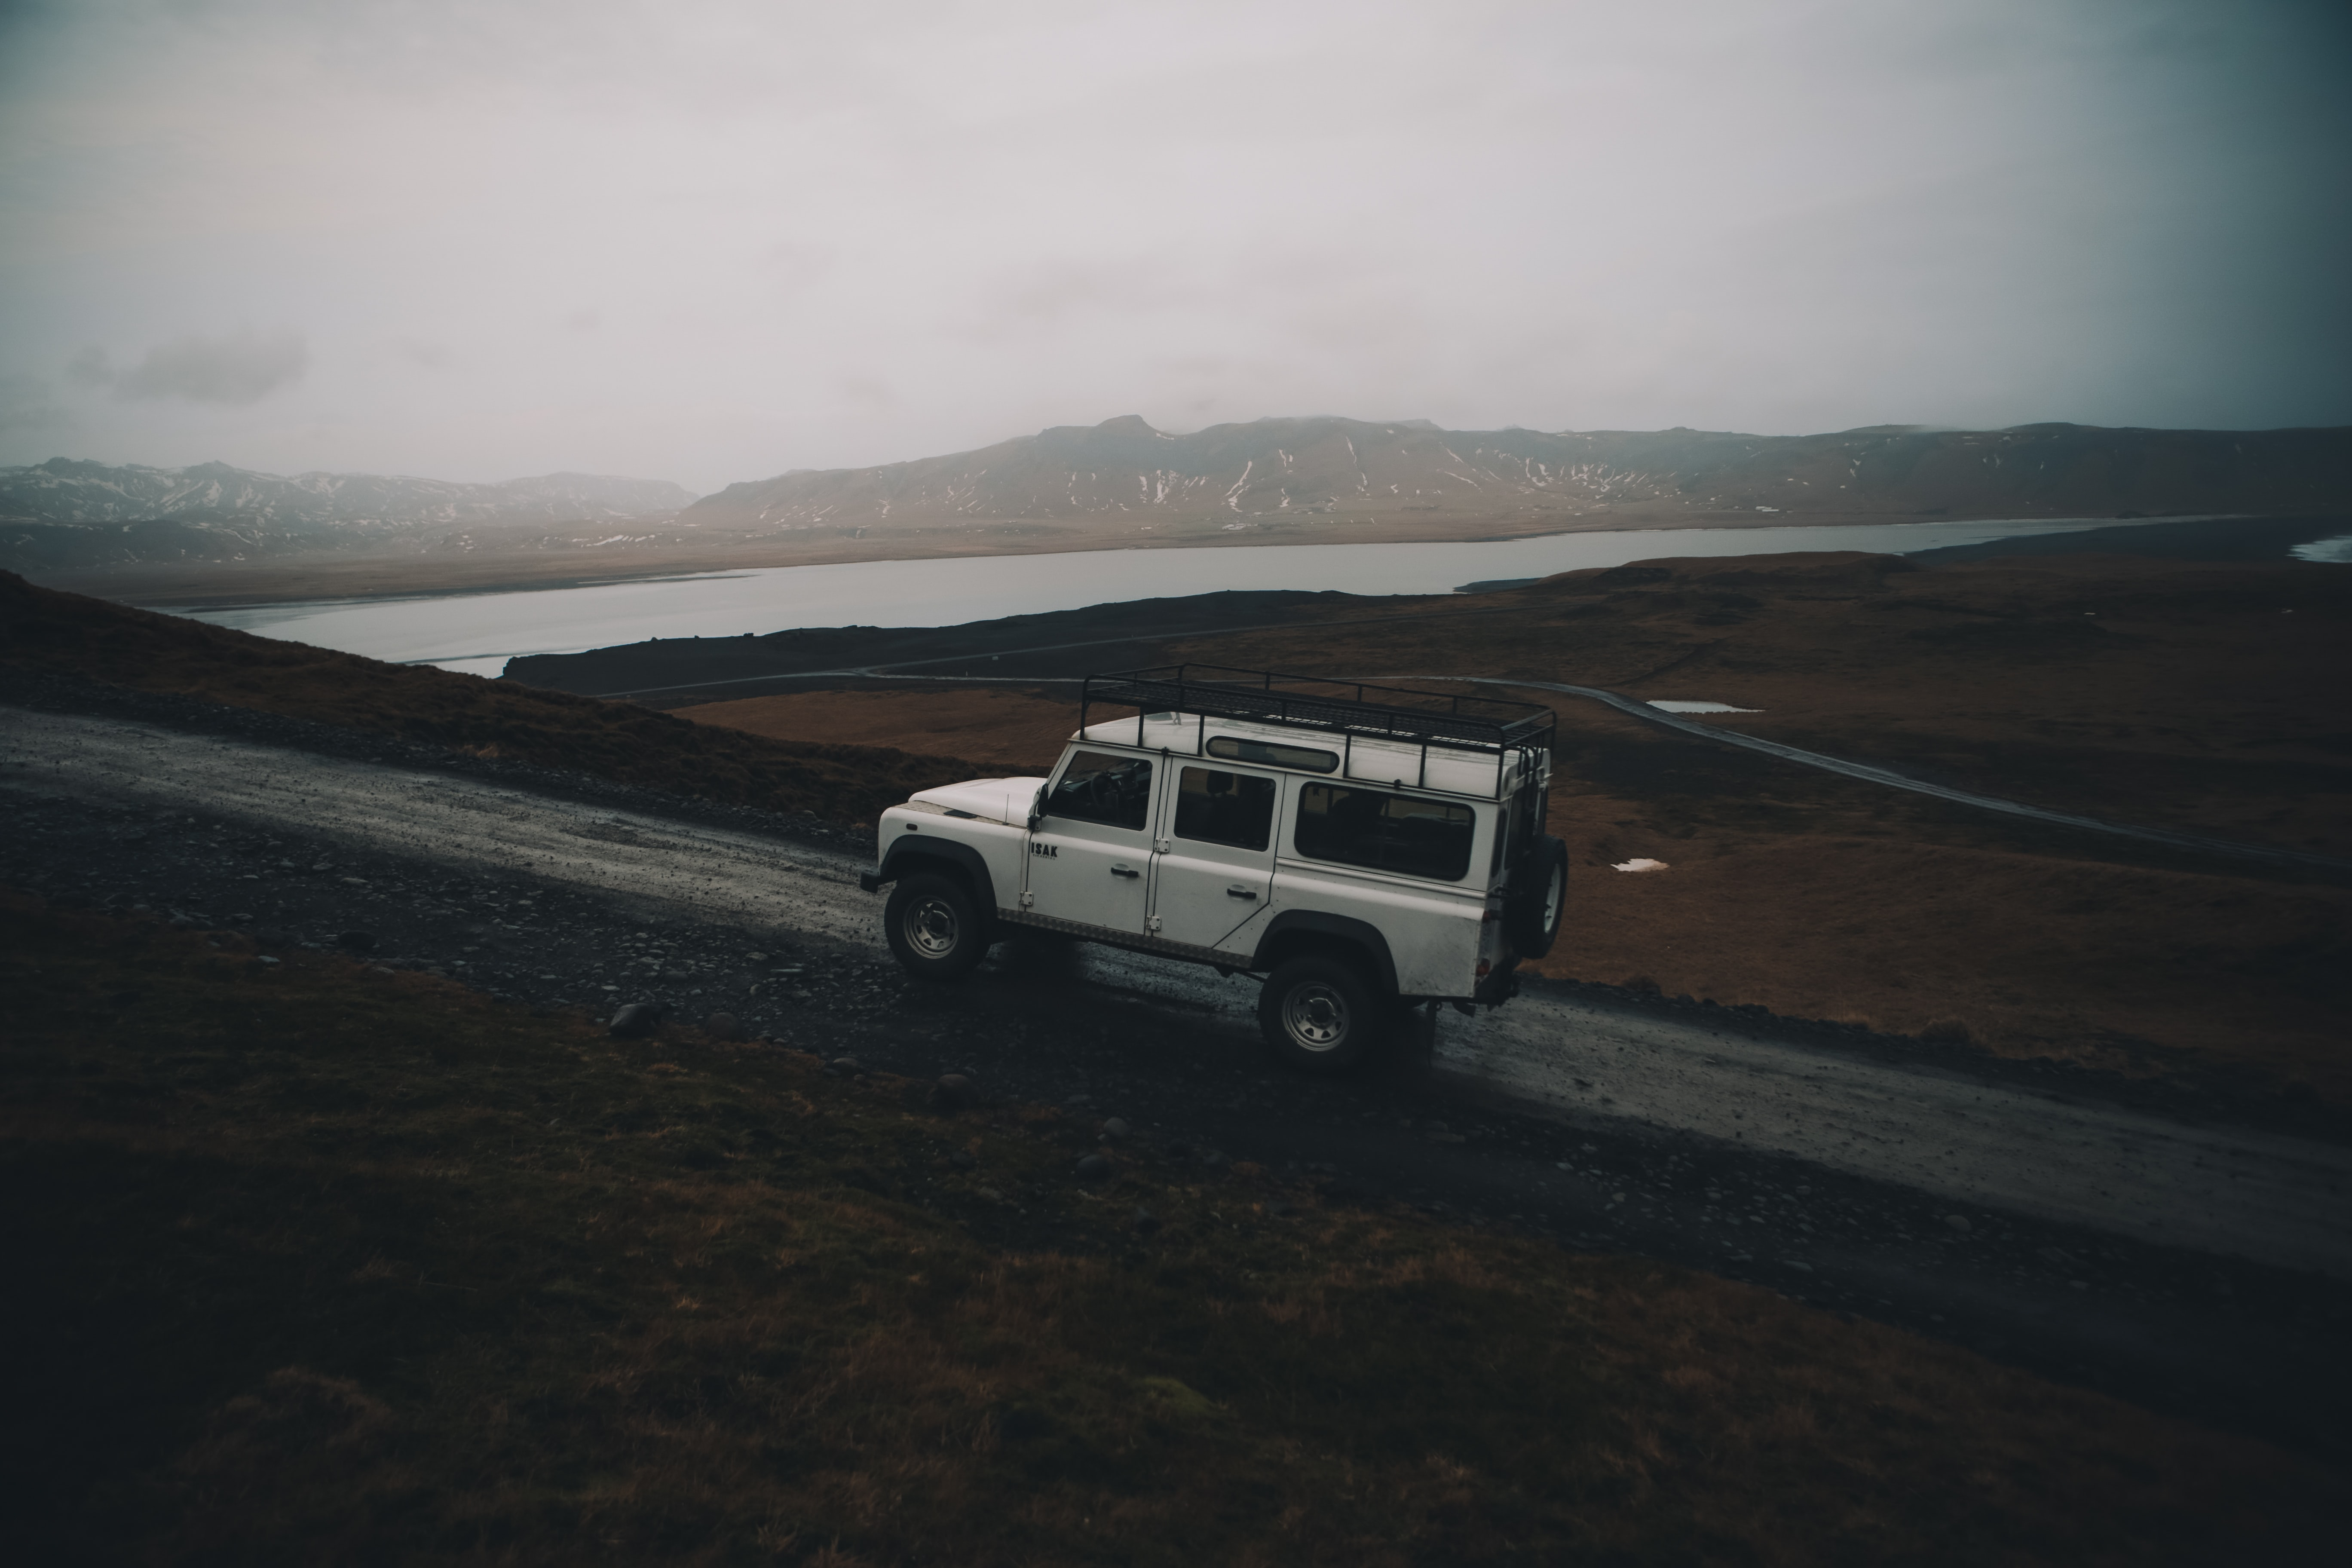 A white SUV driving up a dirt road in the mountains